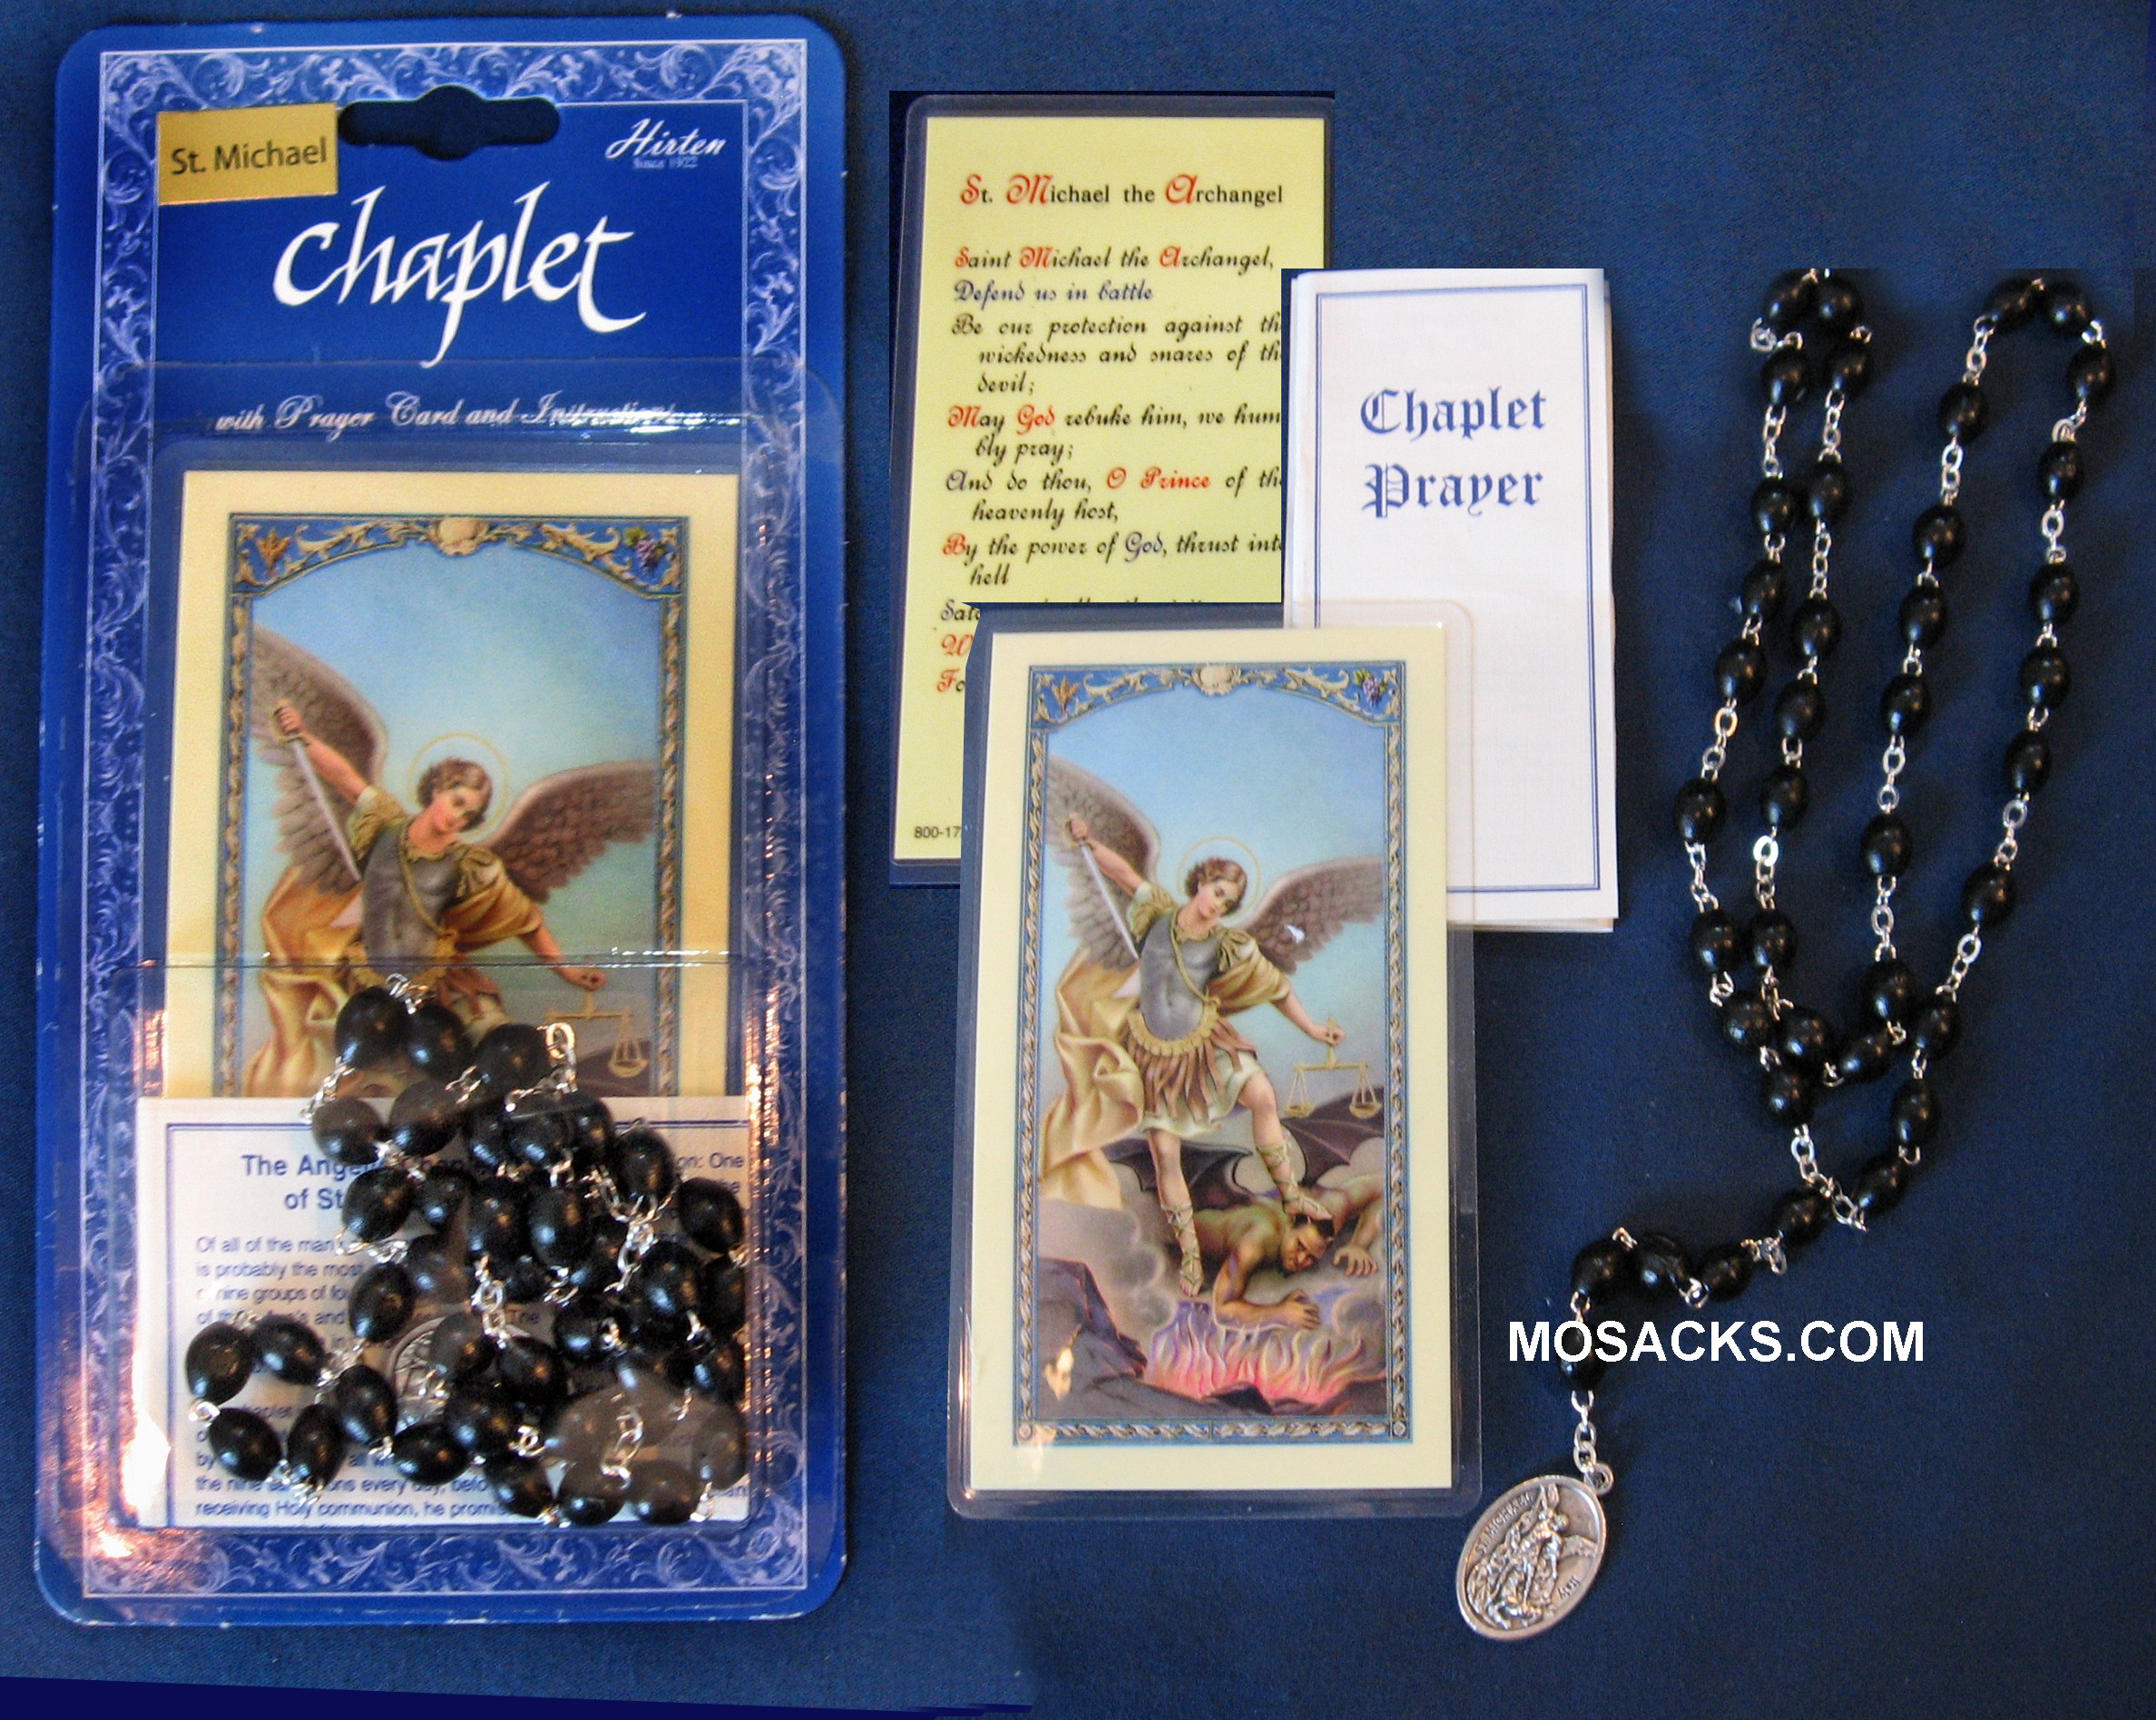 St. Michael Chaplet and Prayer Card, 190-01